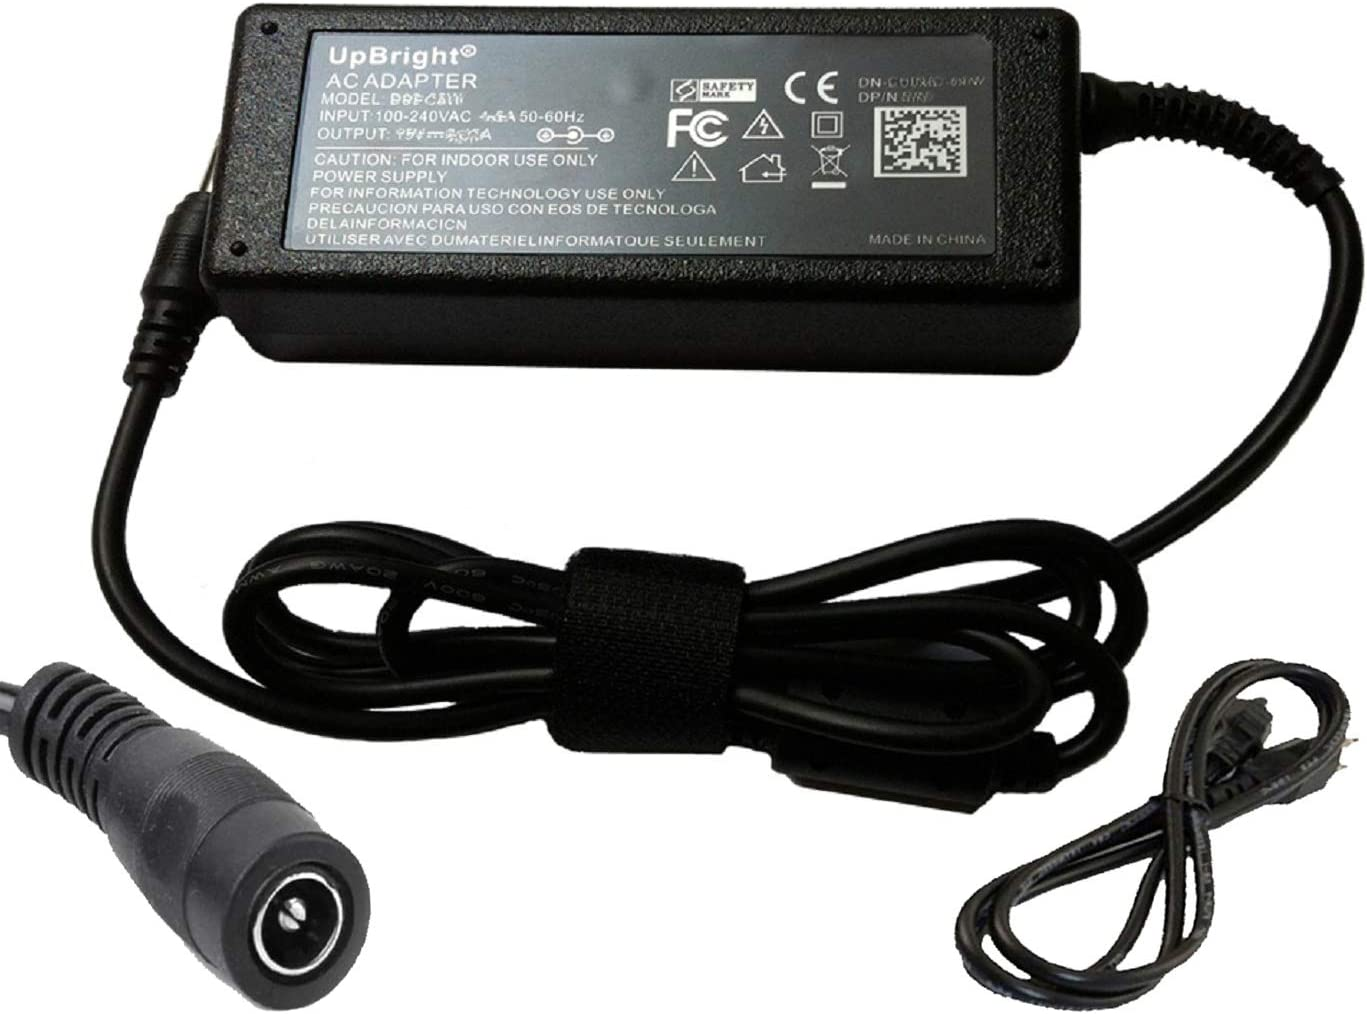 UpBright AC//DC Adapter Replacement for in Seat Solutions 15070 SMG1385000H Golden Tech Lift Recline Chair HV3002-2 HV30022 PR355 PR401 PR508 PR710 PR722 PR747 PR751 PR756 PR355 PR200 PR505 PR630 PSU